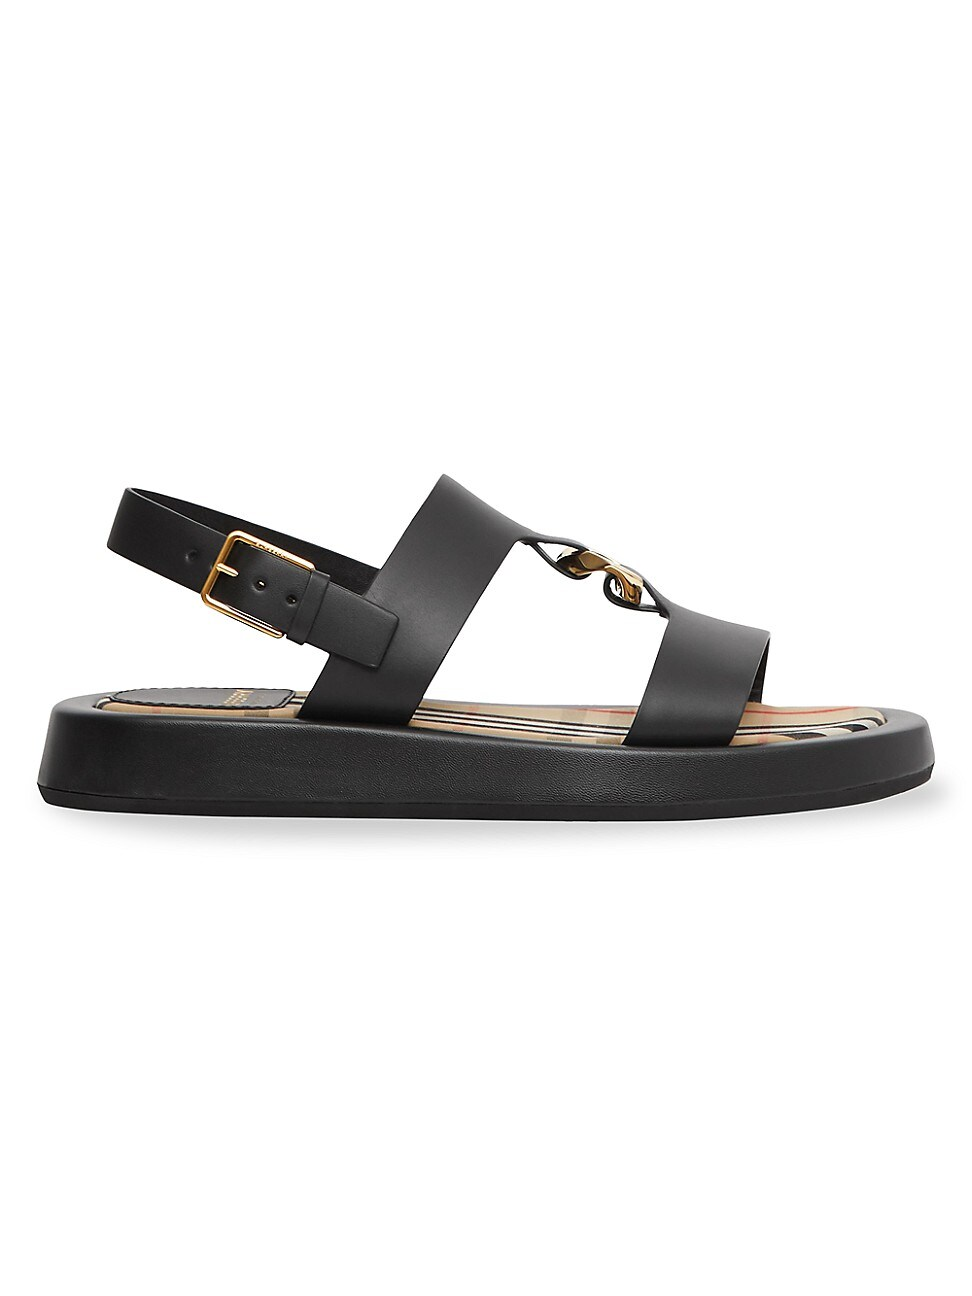 Burberry WOMEN'S BUCKINGHAM LEATHER SLINGBACK SANDALS